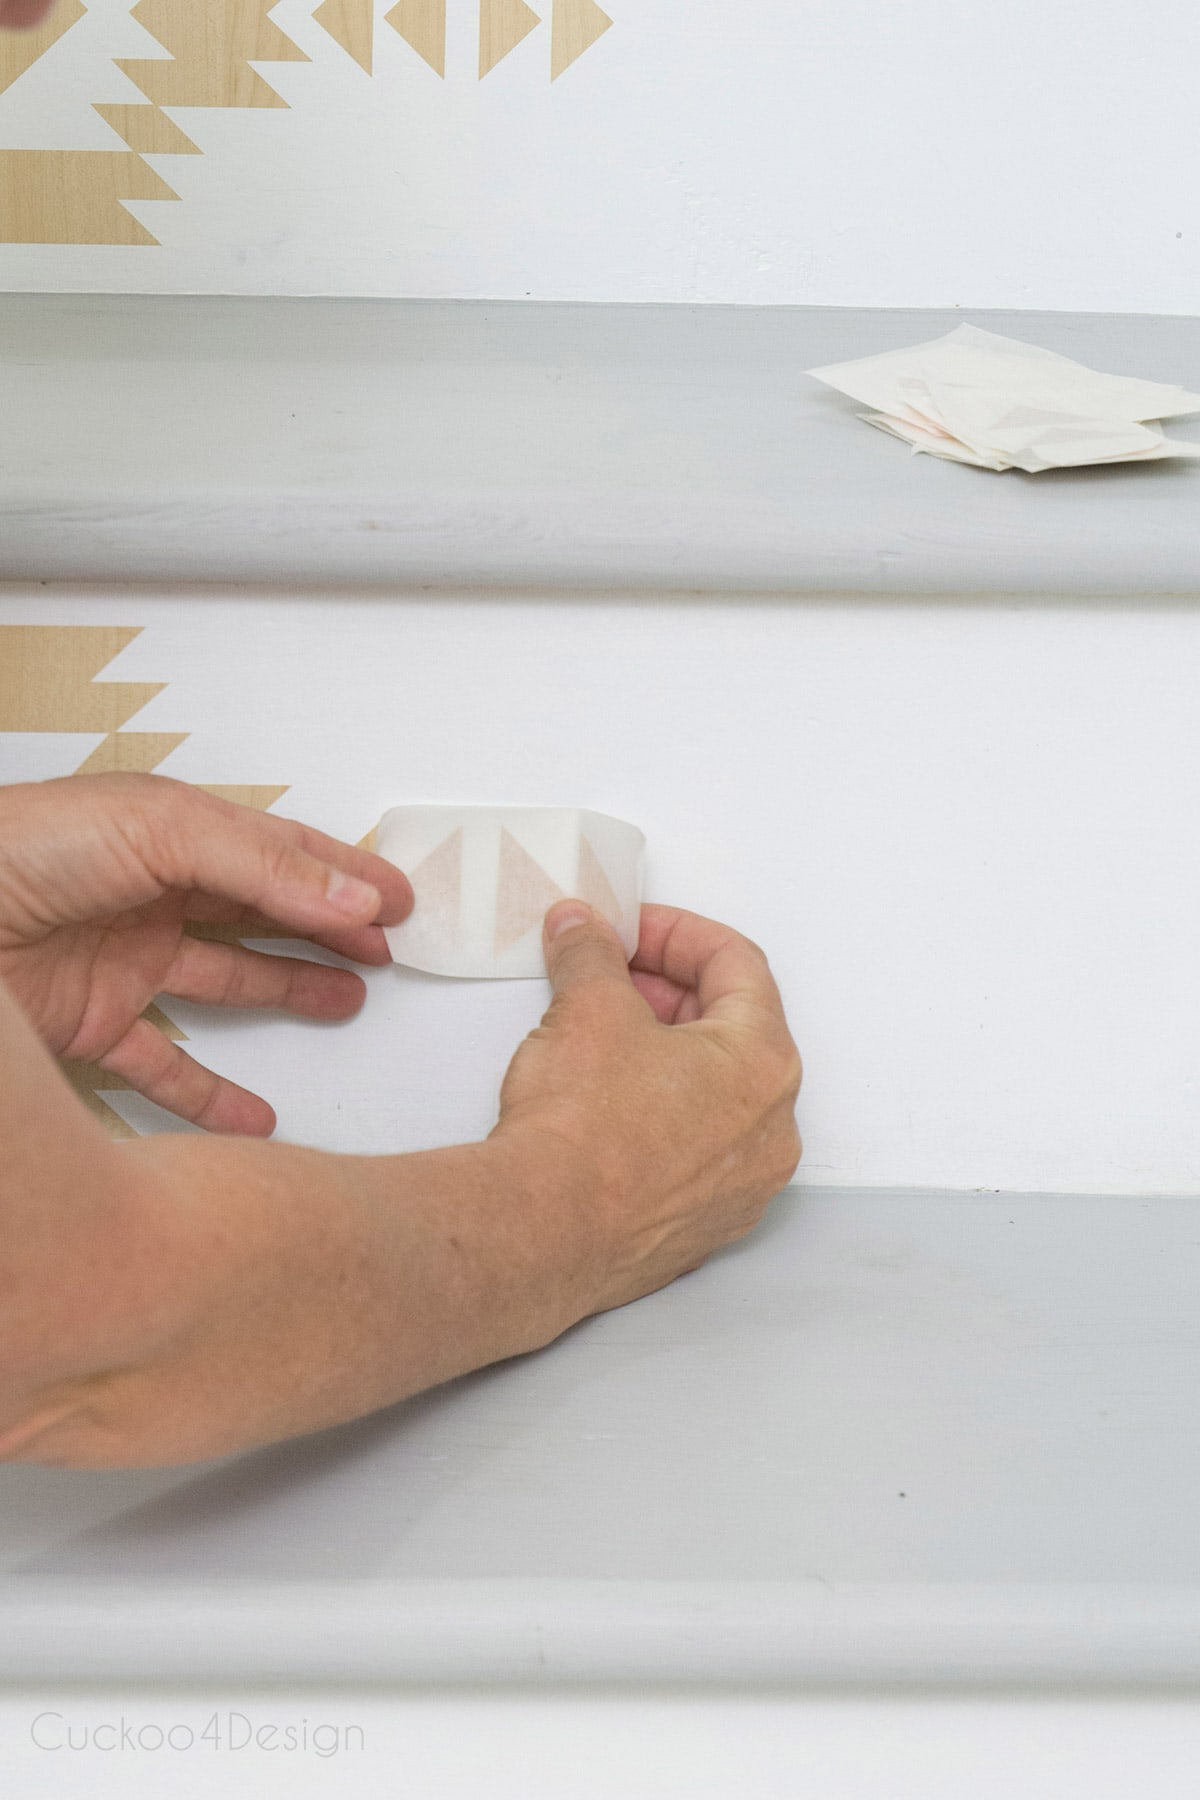 placing self-adhesive vinyl stair riser decals on painted surface